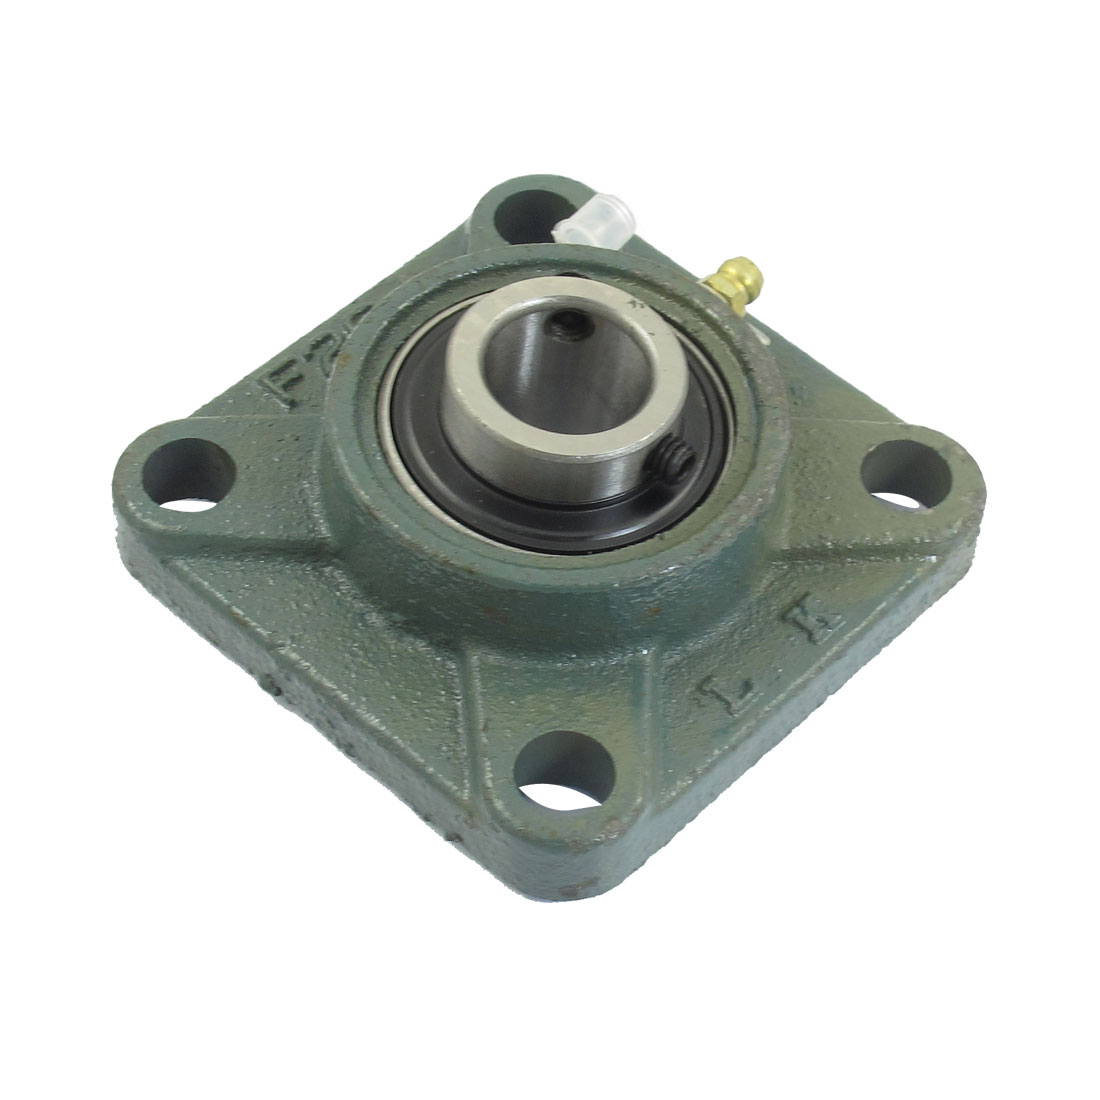 Ucf204 20Mm Mounted Block Cast Housing Self-Aligning Pillow Bearing